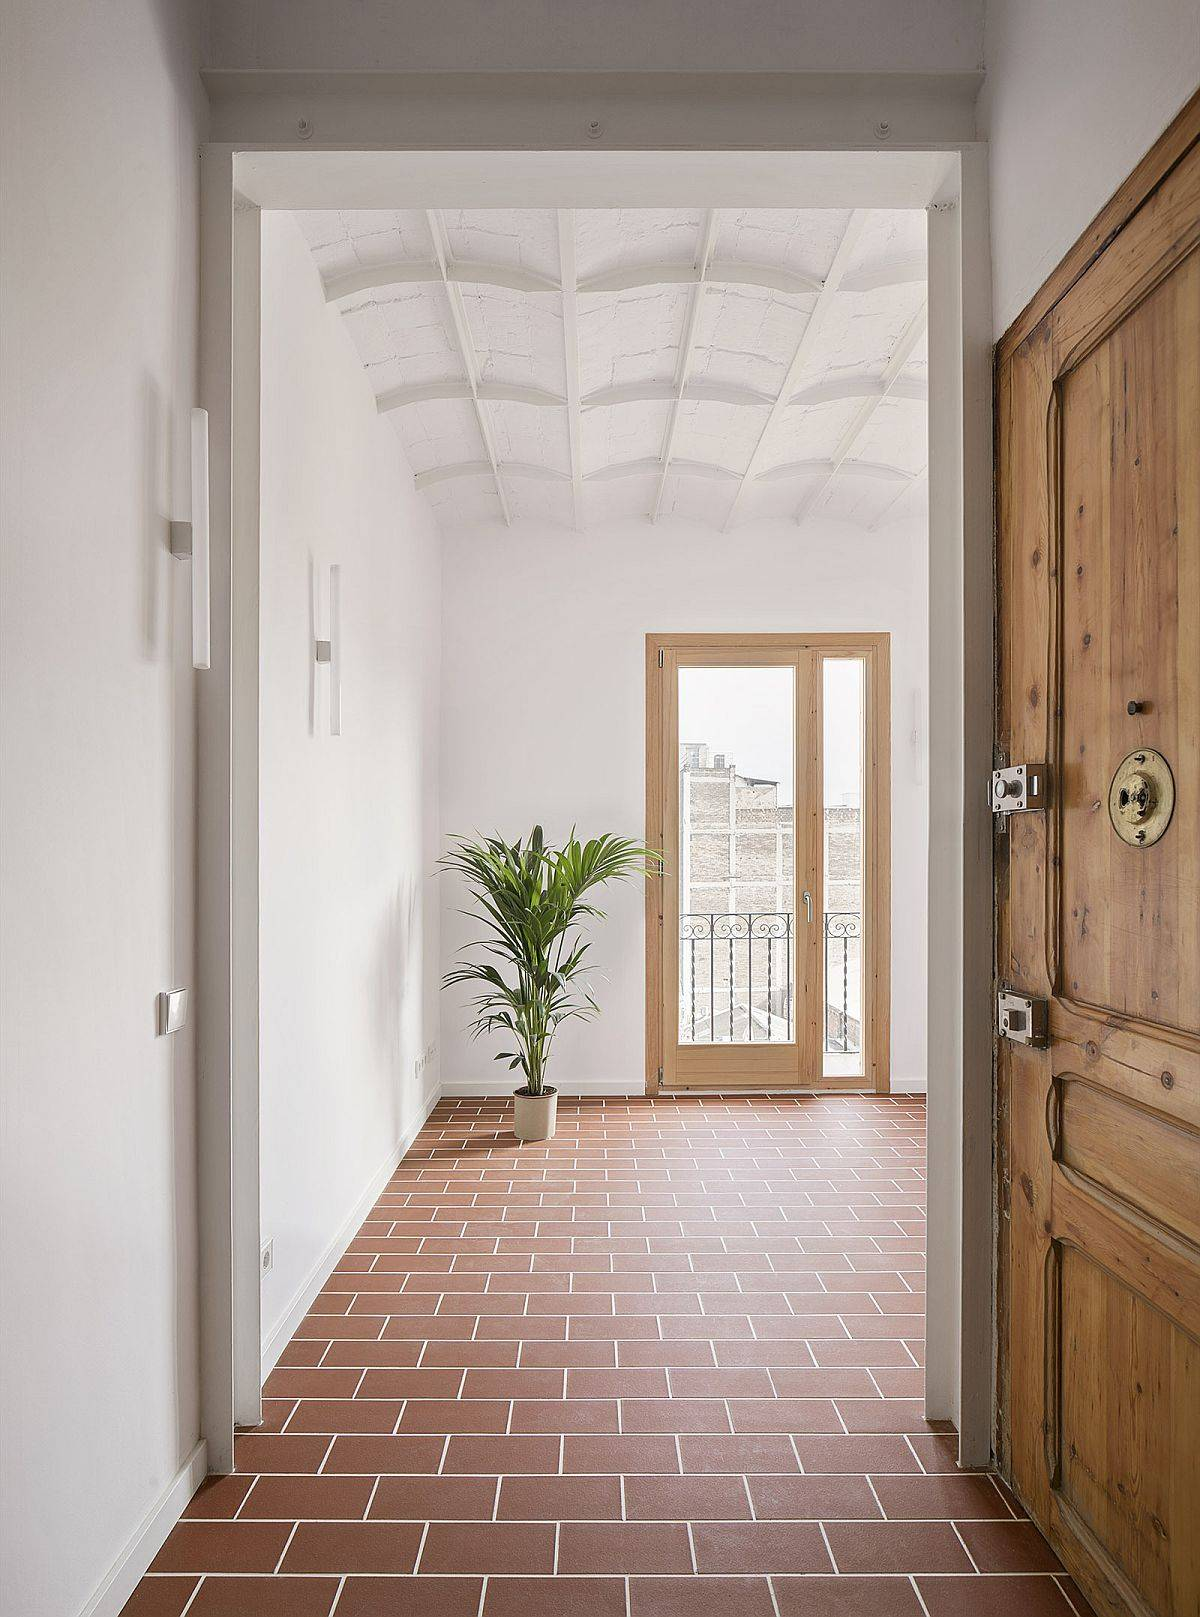 Classic-ceilings-and-Terracotta-tiles-bring-textural-and-old-world-charm-into-this-small-Barcelona-home-85234